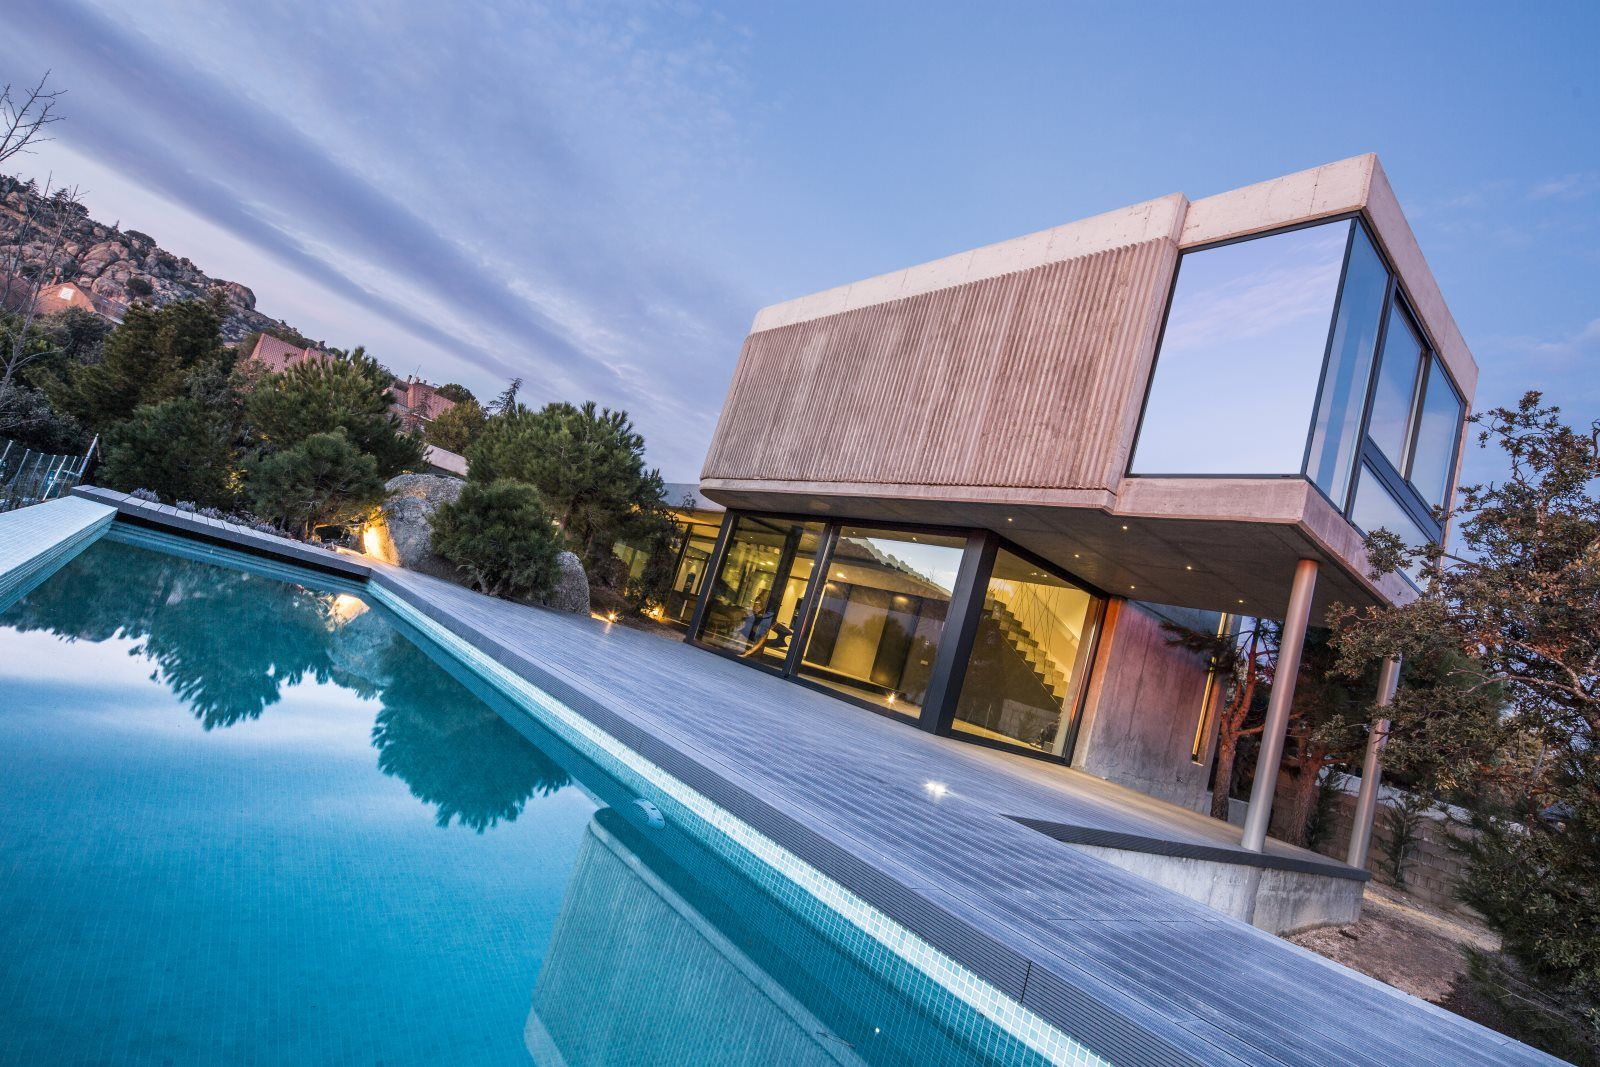 Rock 39 s house u3 estudio de arquitectura madrid for Estudios de arquitectura en madrid